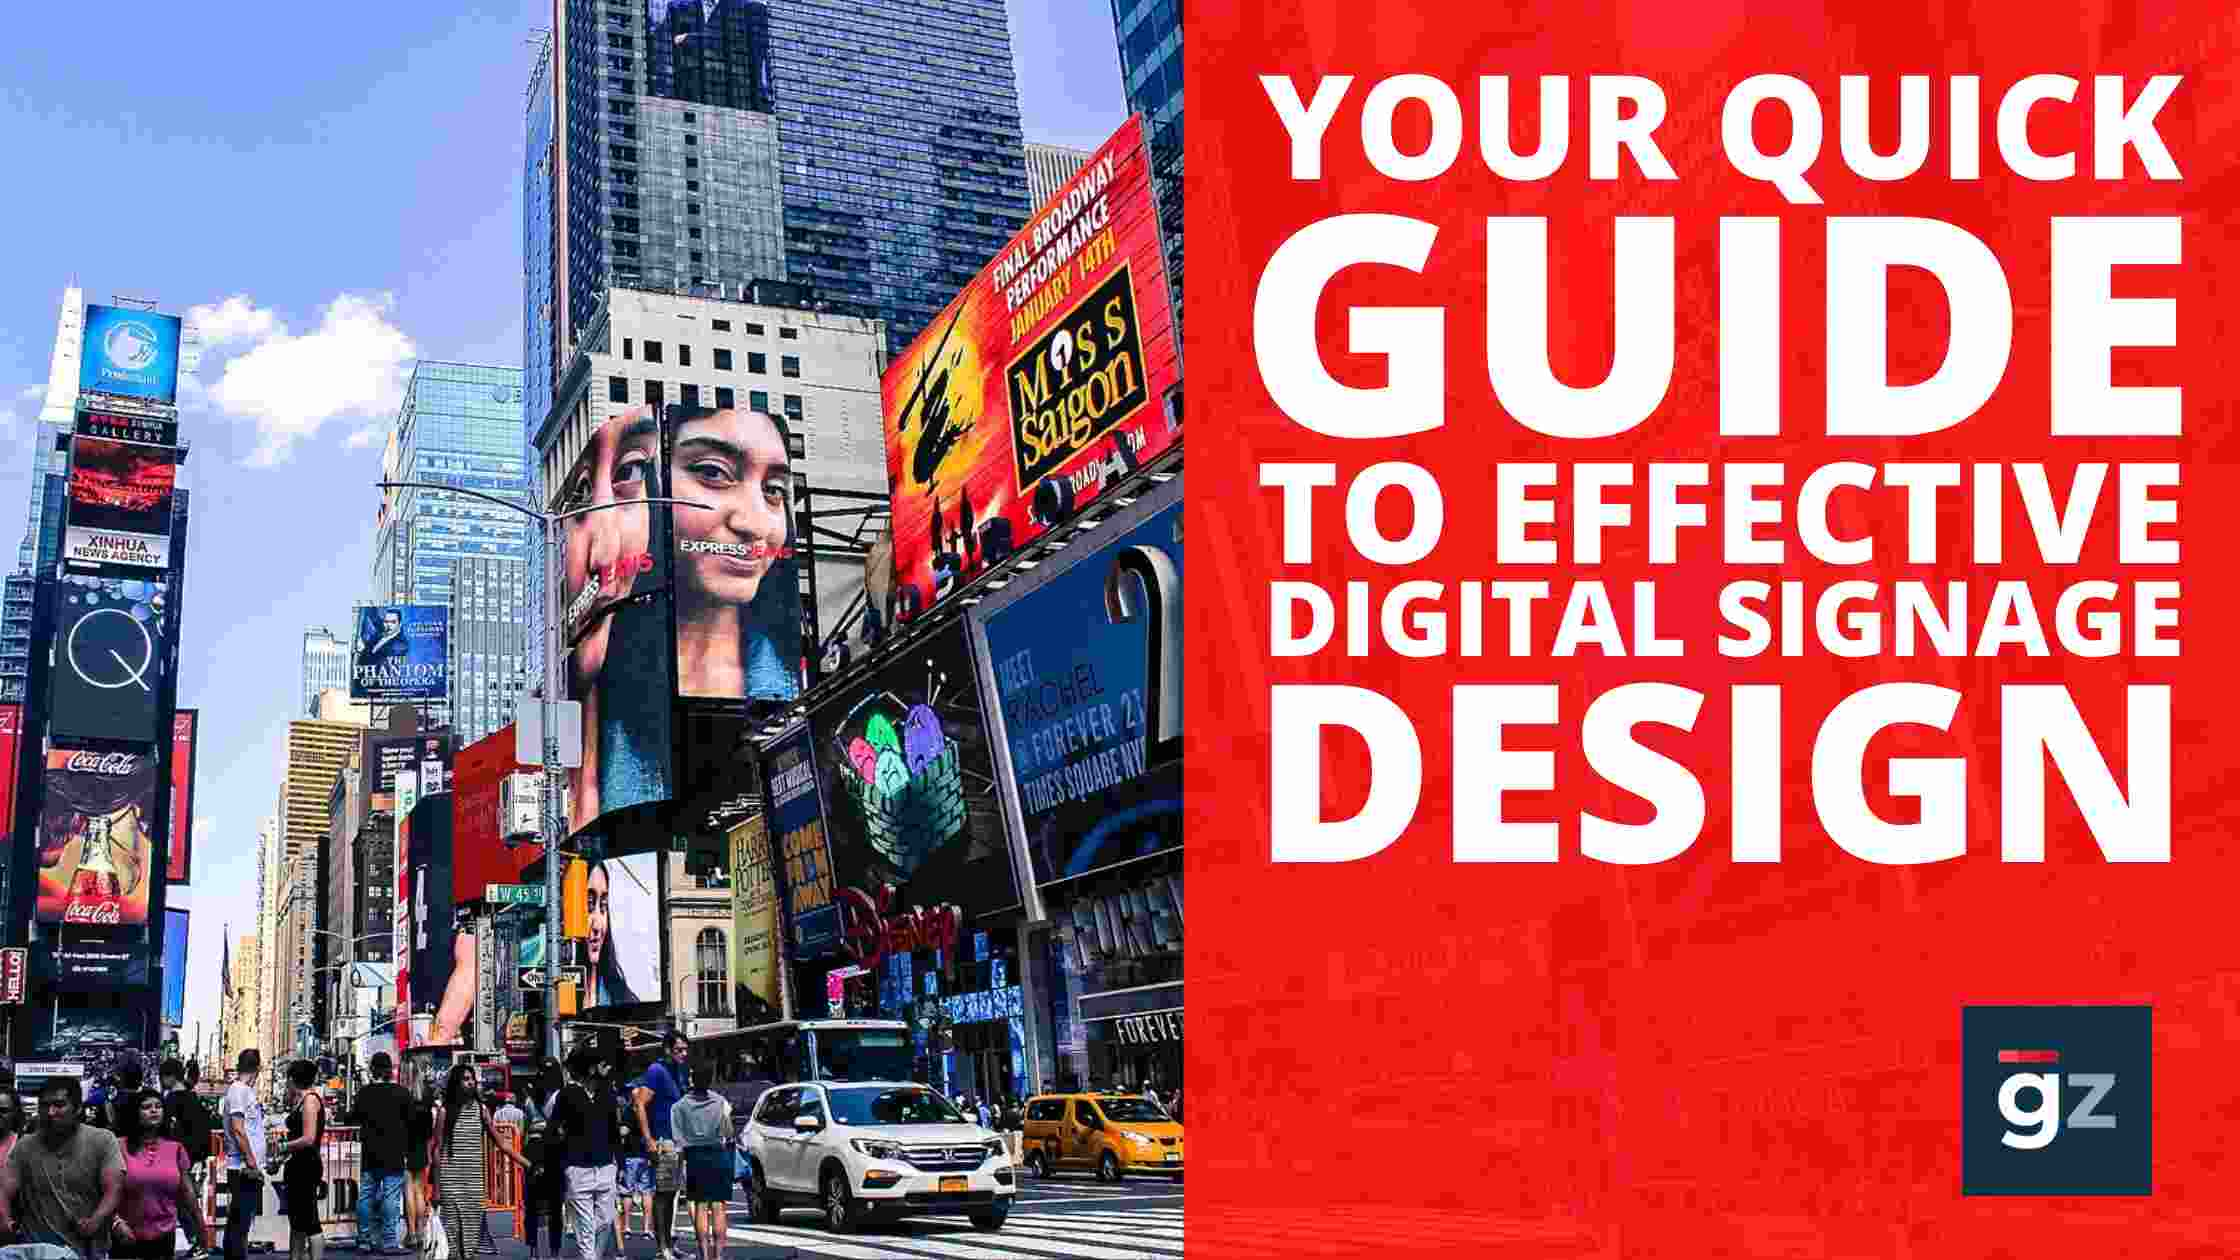 Your Quick Guide to Effective Digital Signage Design